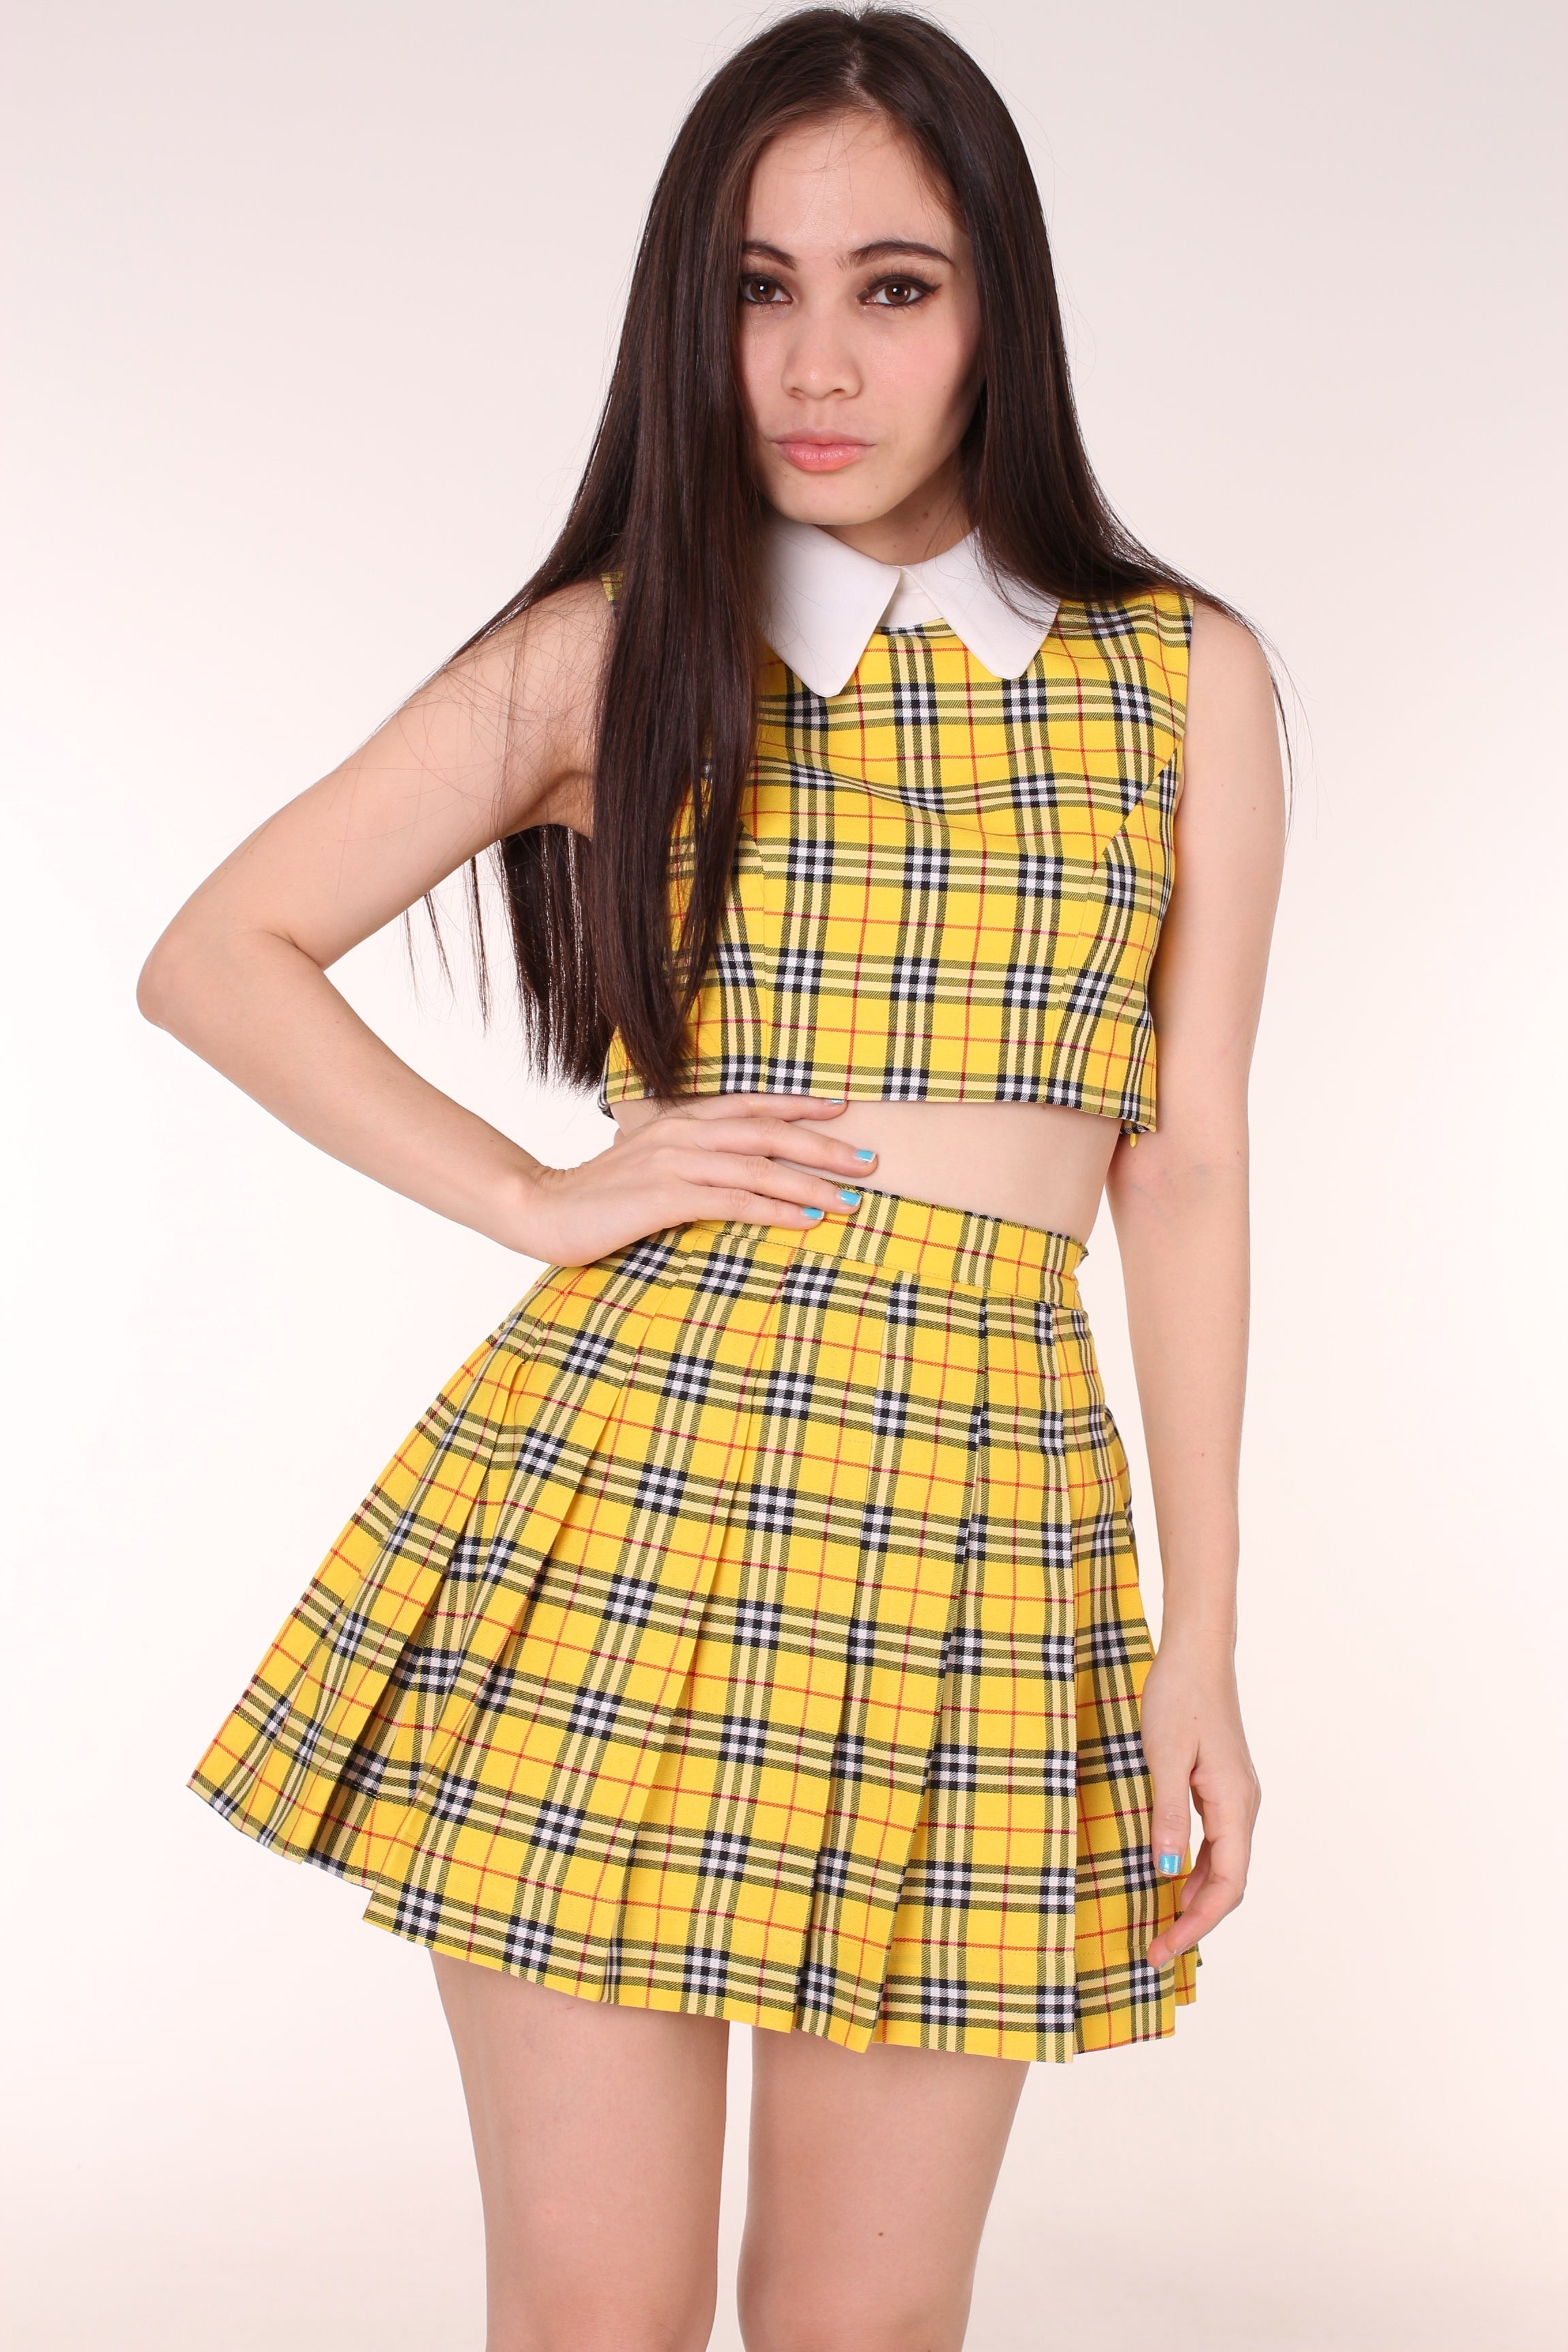 Image of As If Tartan Set with Sleeveless Top Version